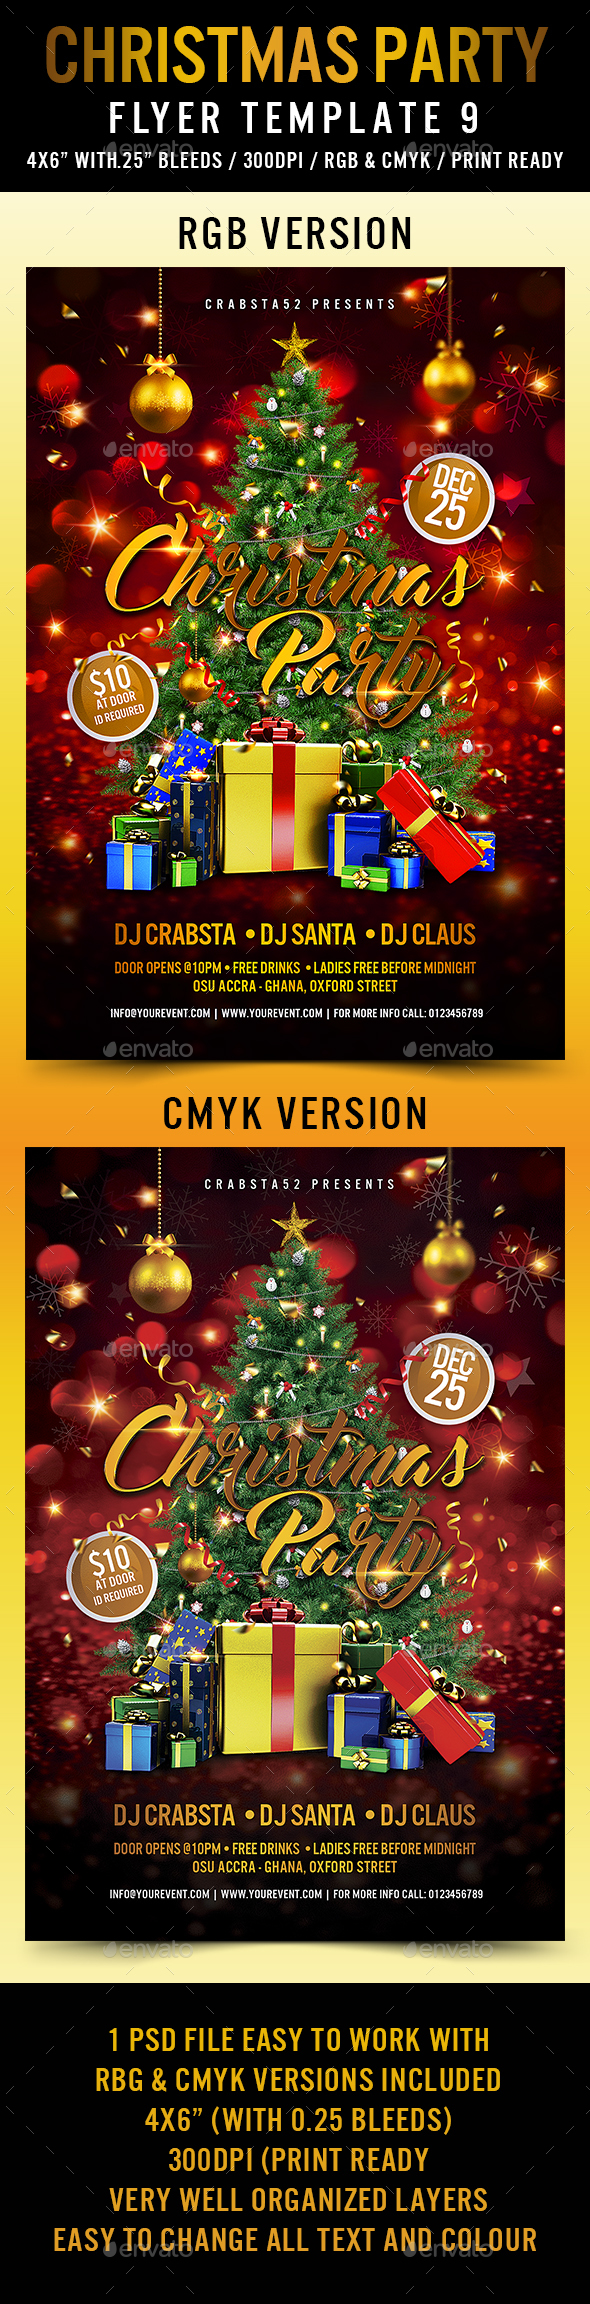 Christmas Party Flyer Template 9 - Holidays Events